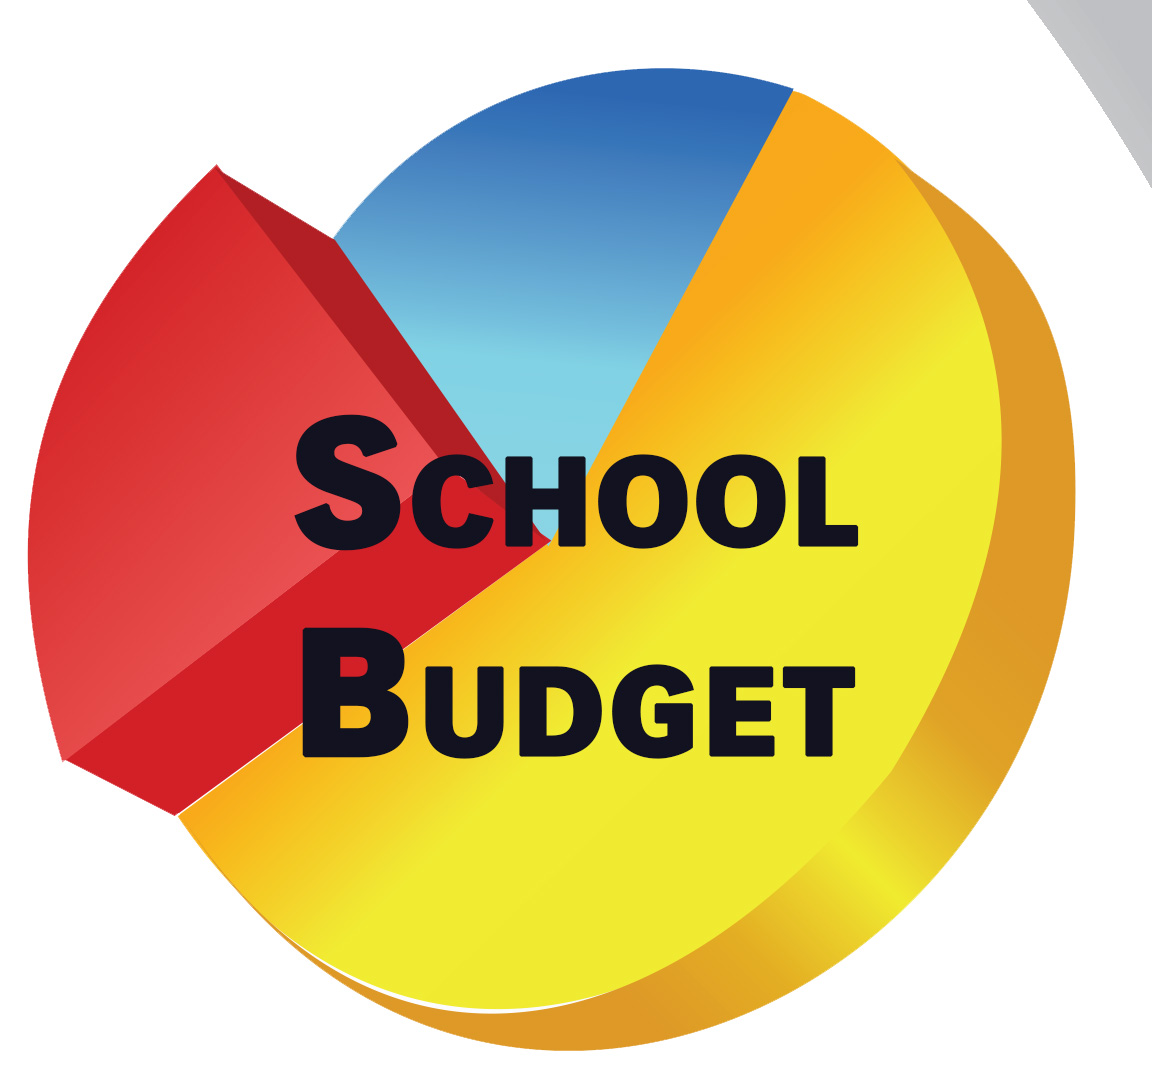 School budget clipart black and white Cape May City Elementary School black and white